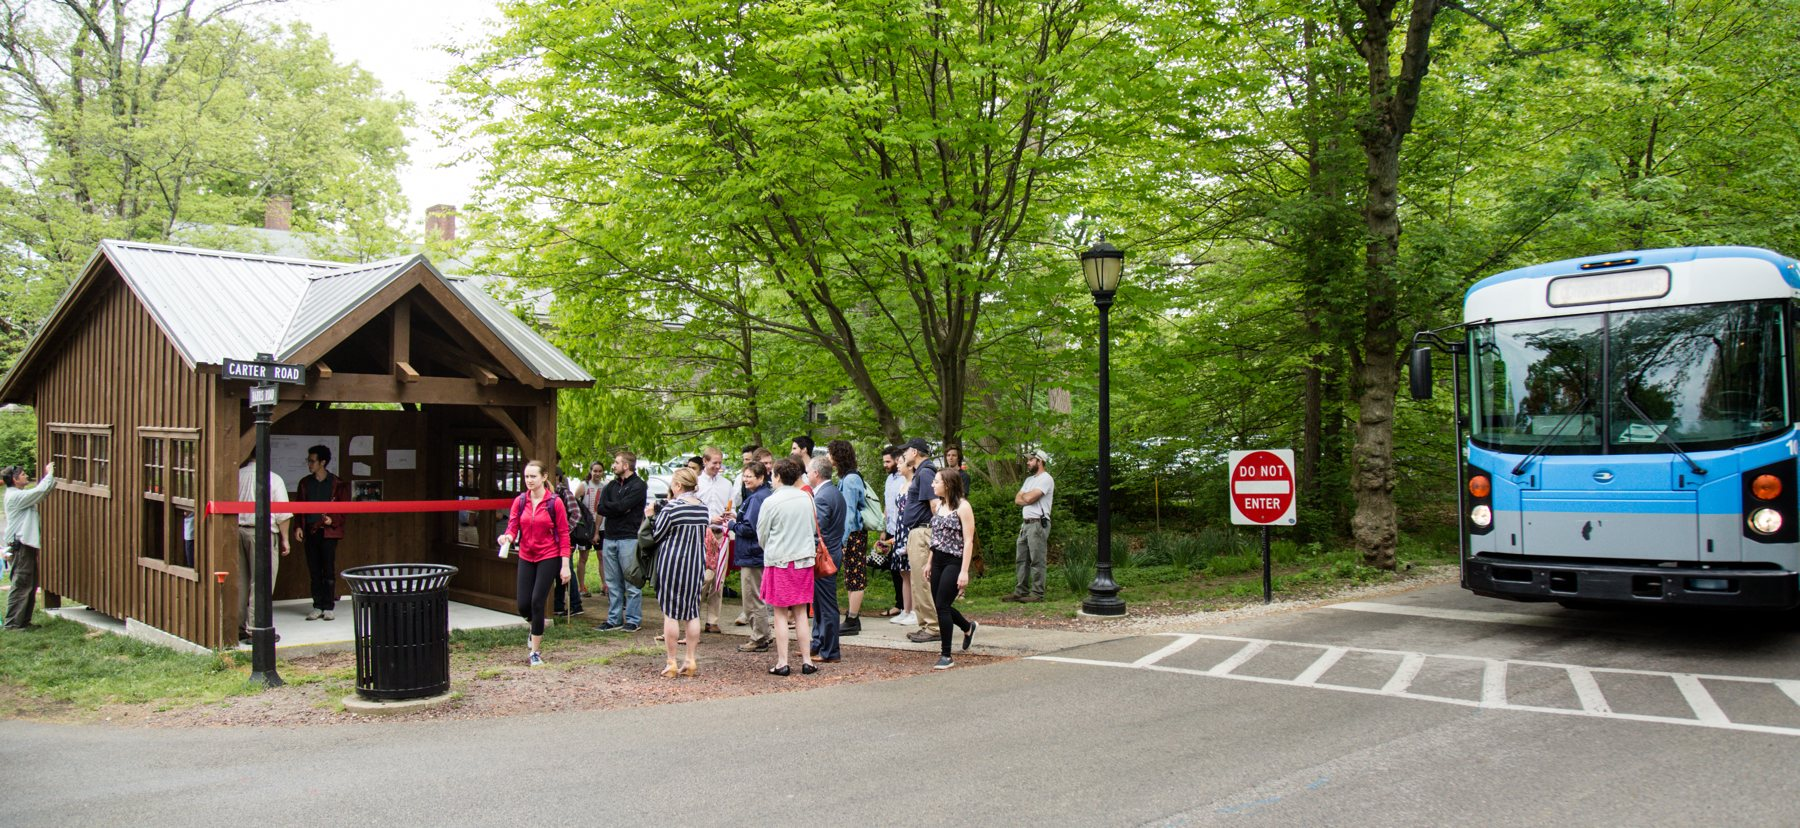 A bus stop on campus with a crowd of people and a bus